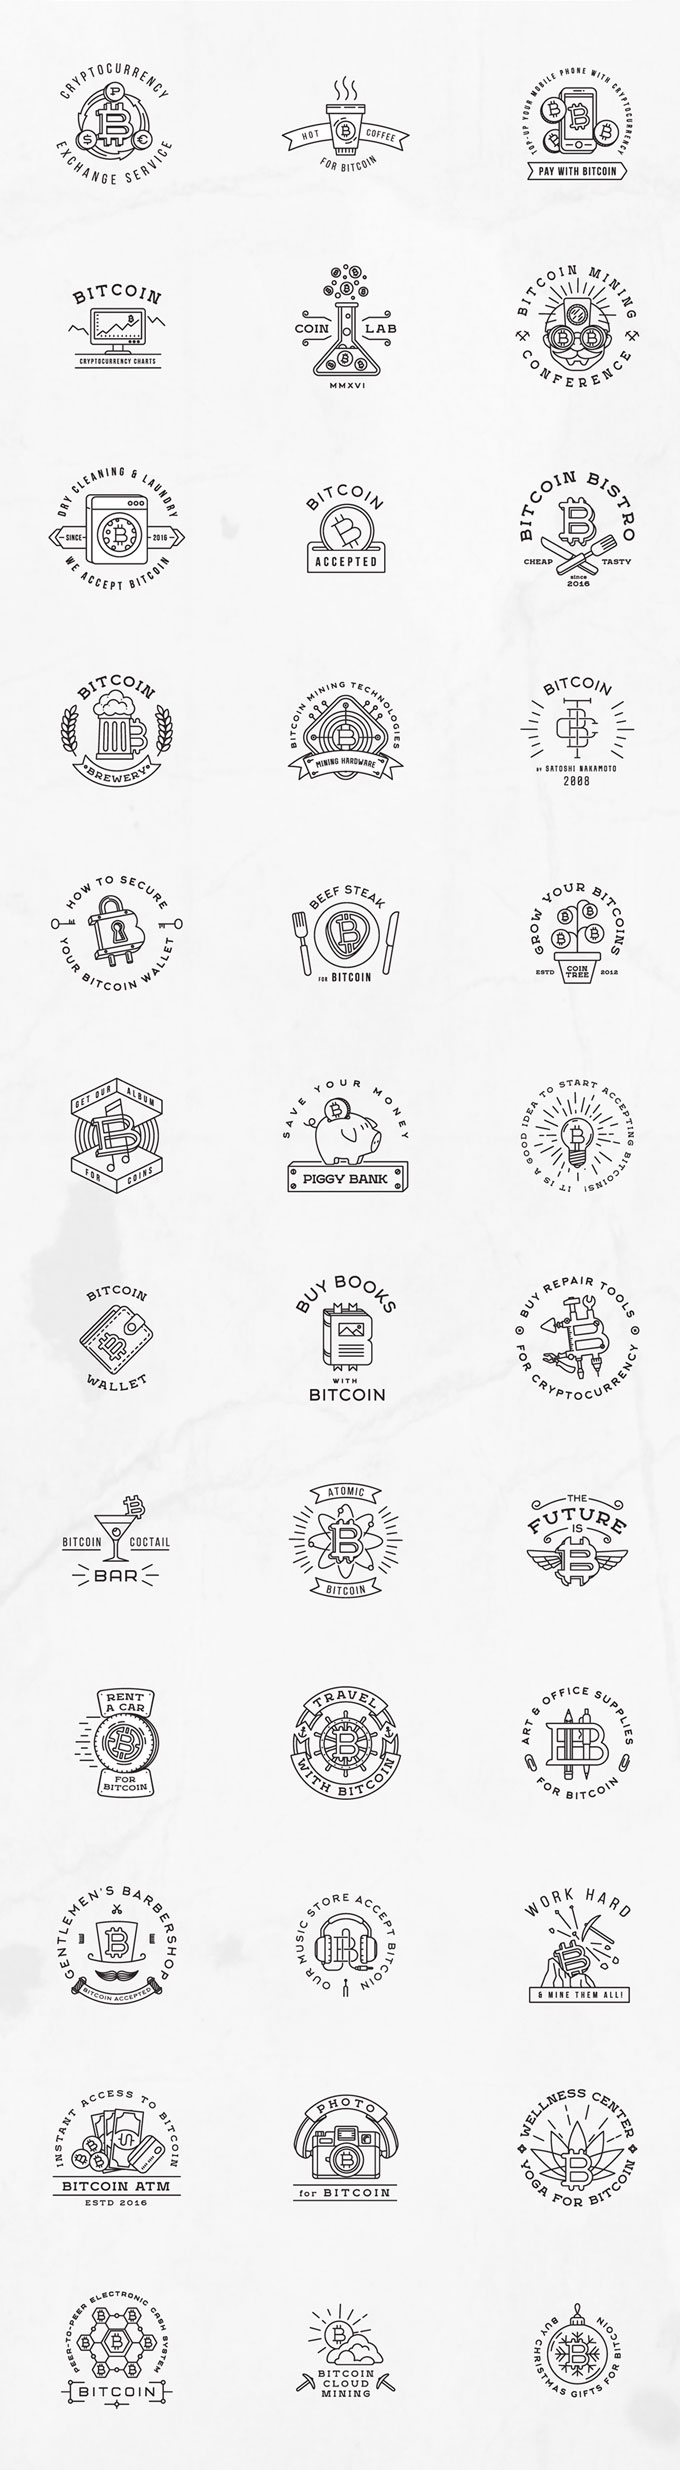 bitcoin-vintage-logo-badges